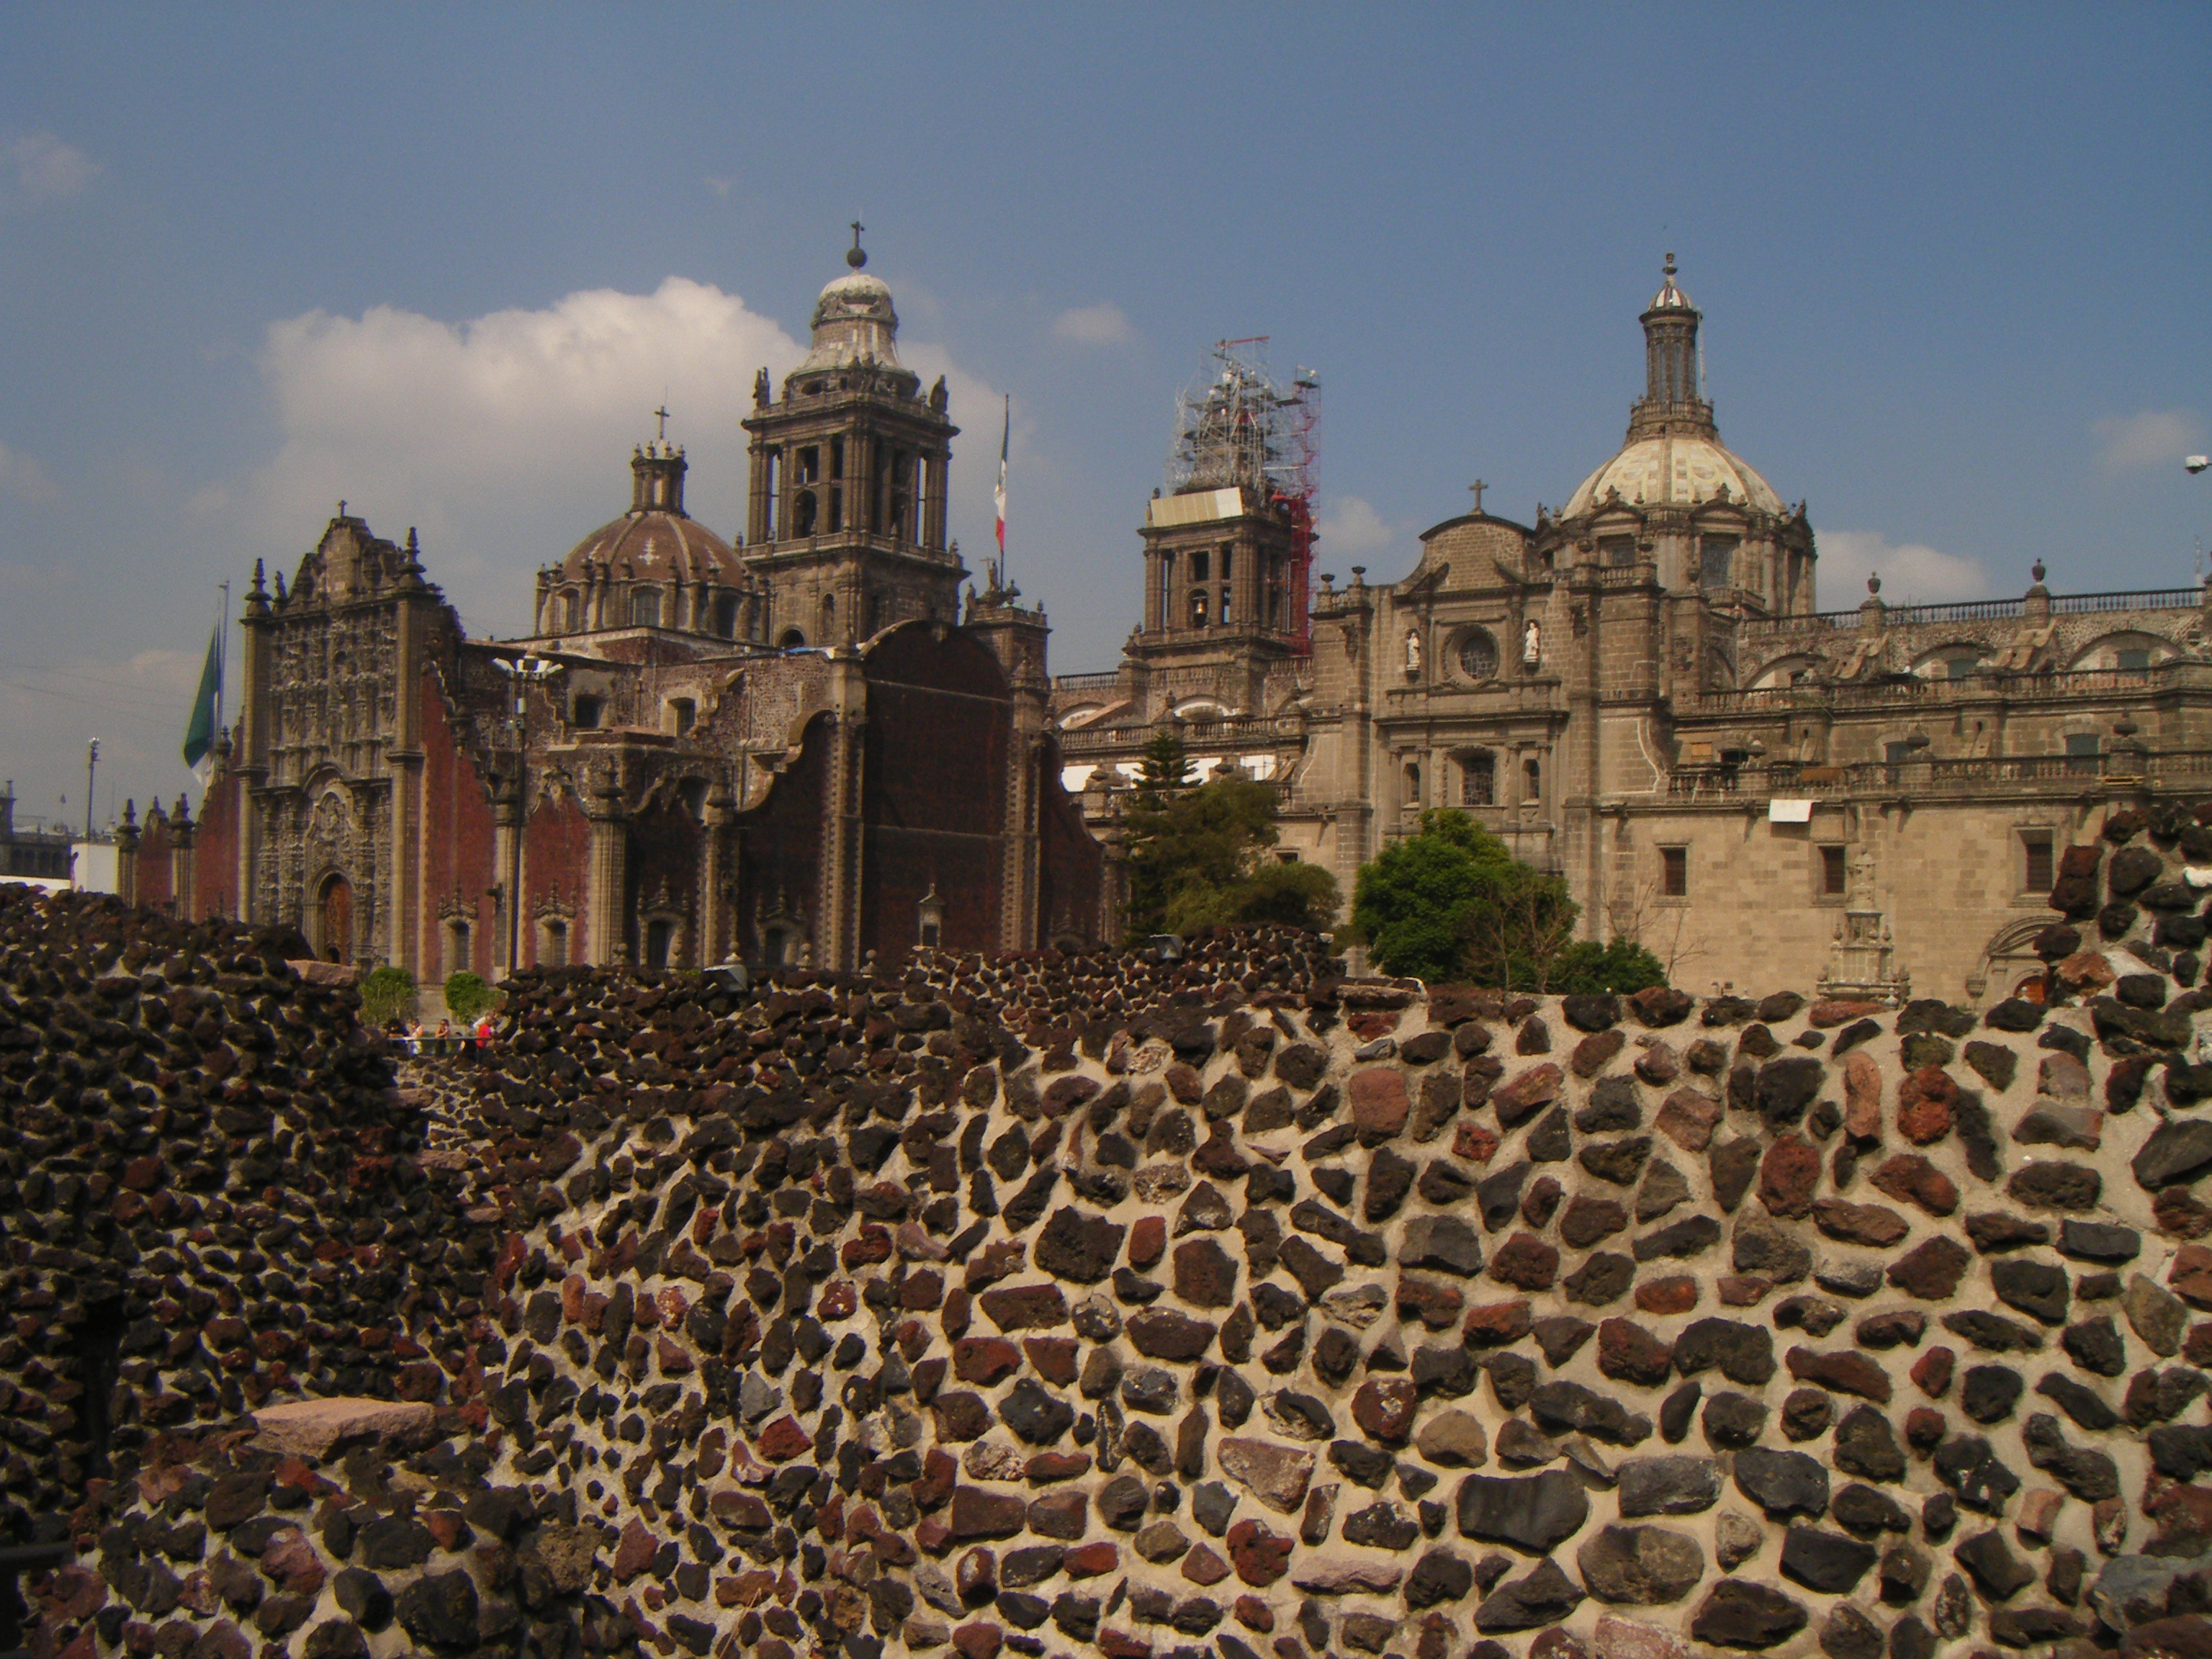 aztec and city Modern-day mexico city sits atop the ruins of this once-great center of the aztec empire.